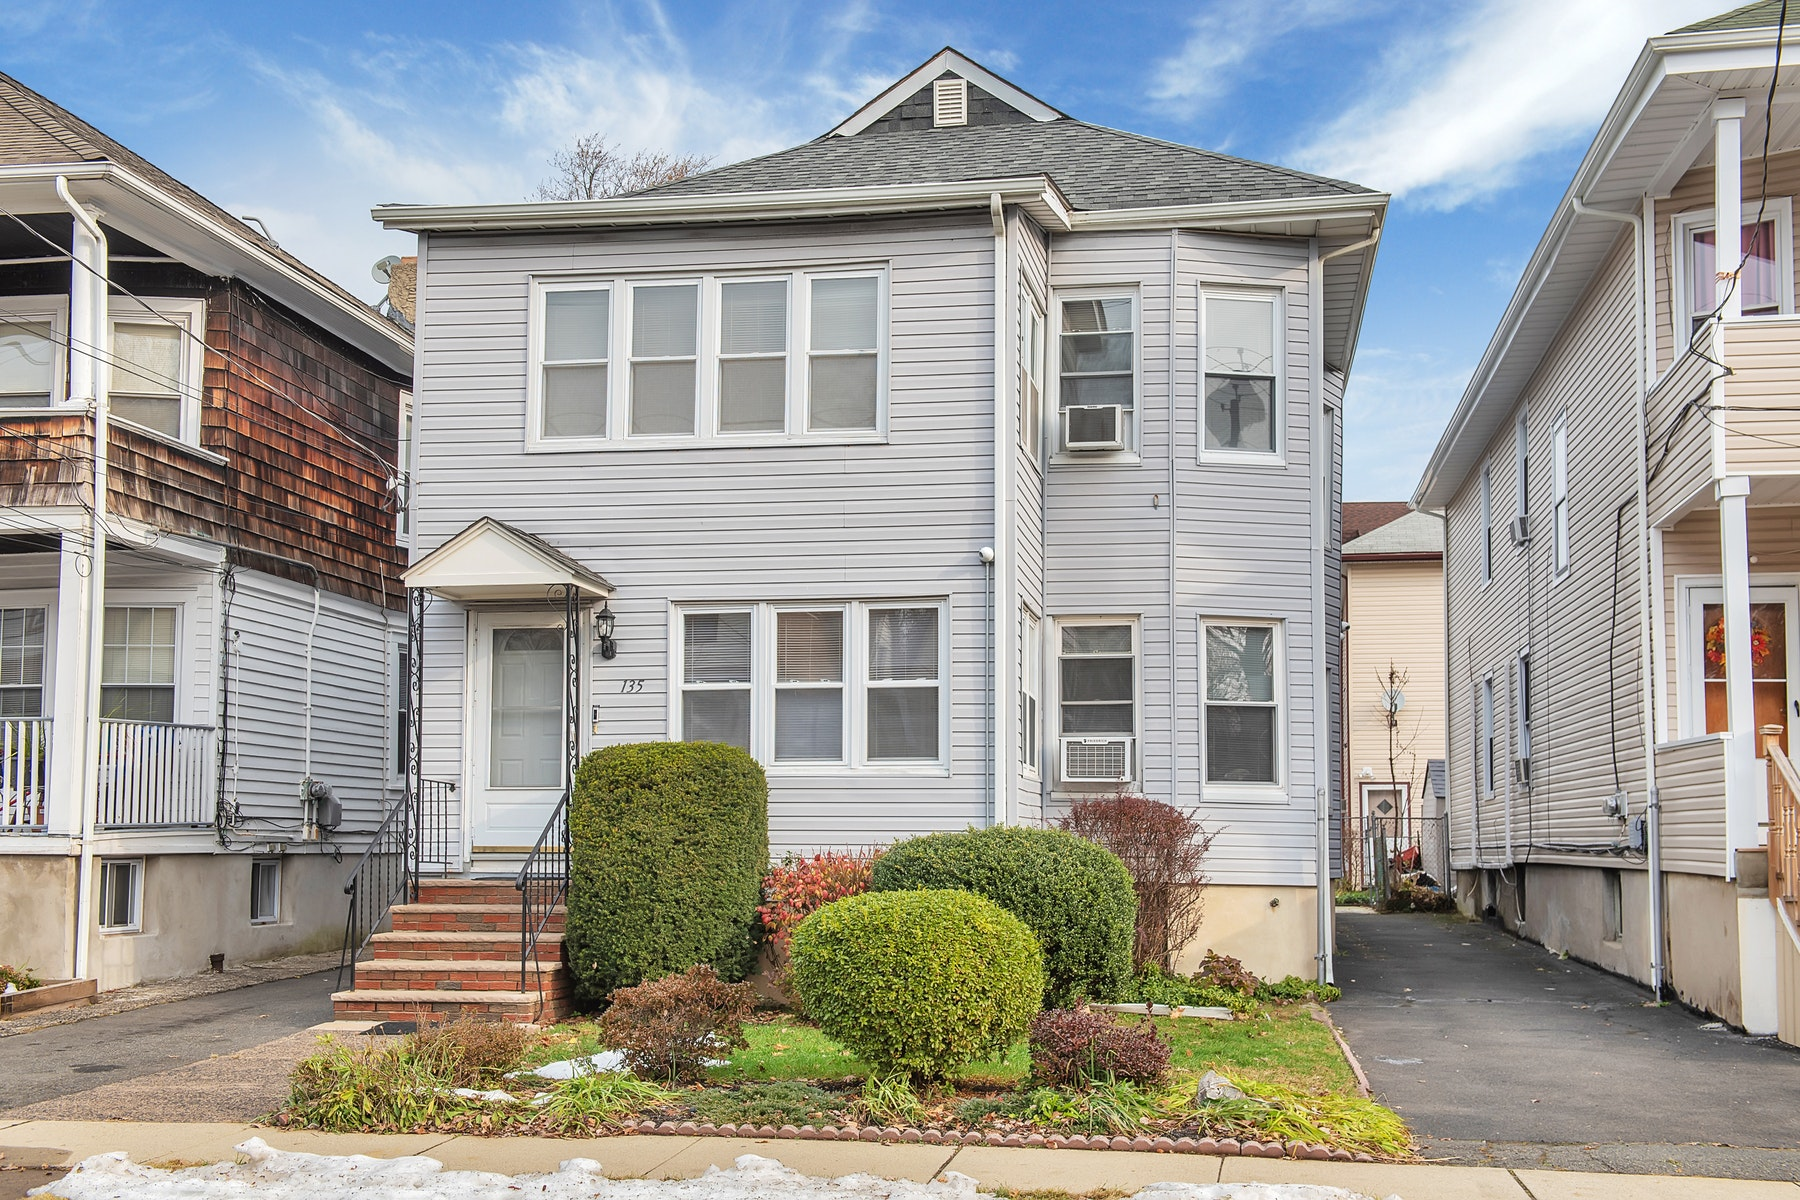 Other Residential for Rent at Location, Location, Location 135 Claremont Avenue, Montclair, New Jersey 07042 United States